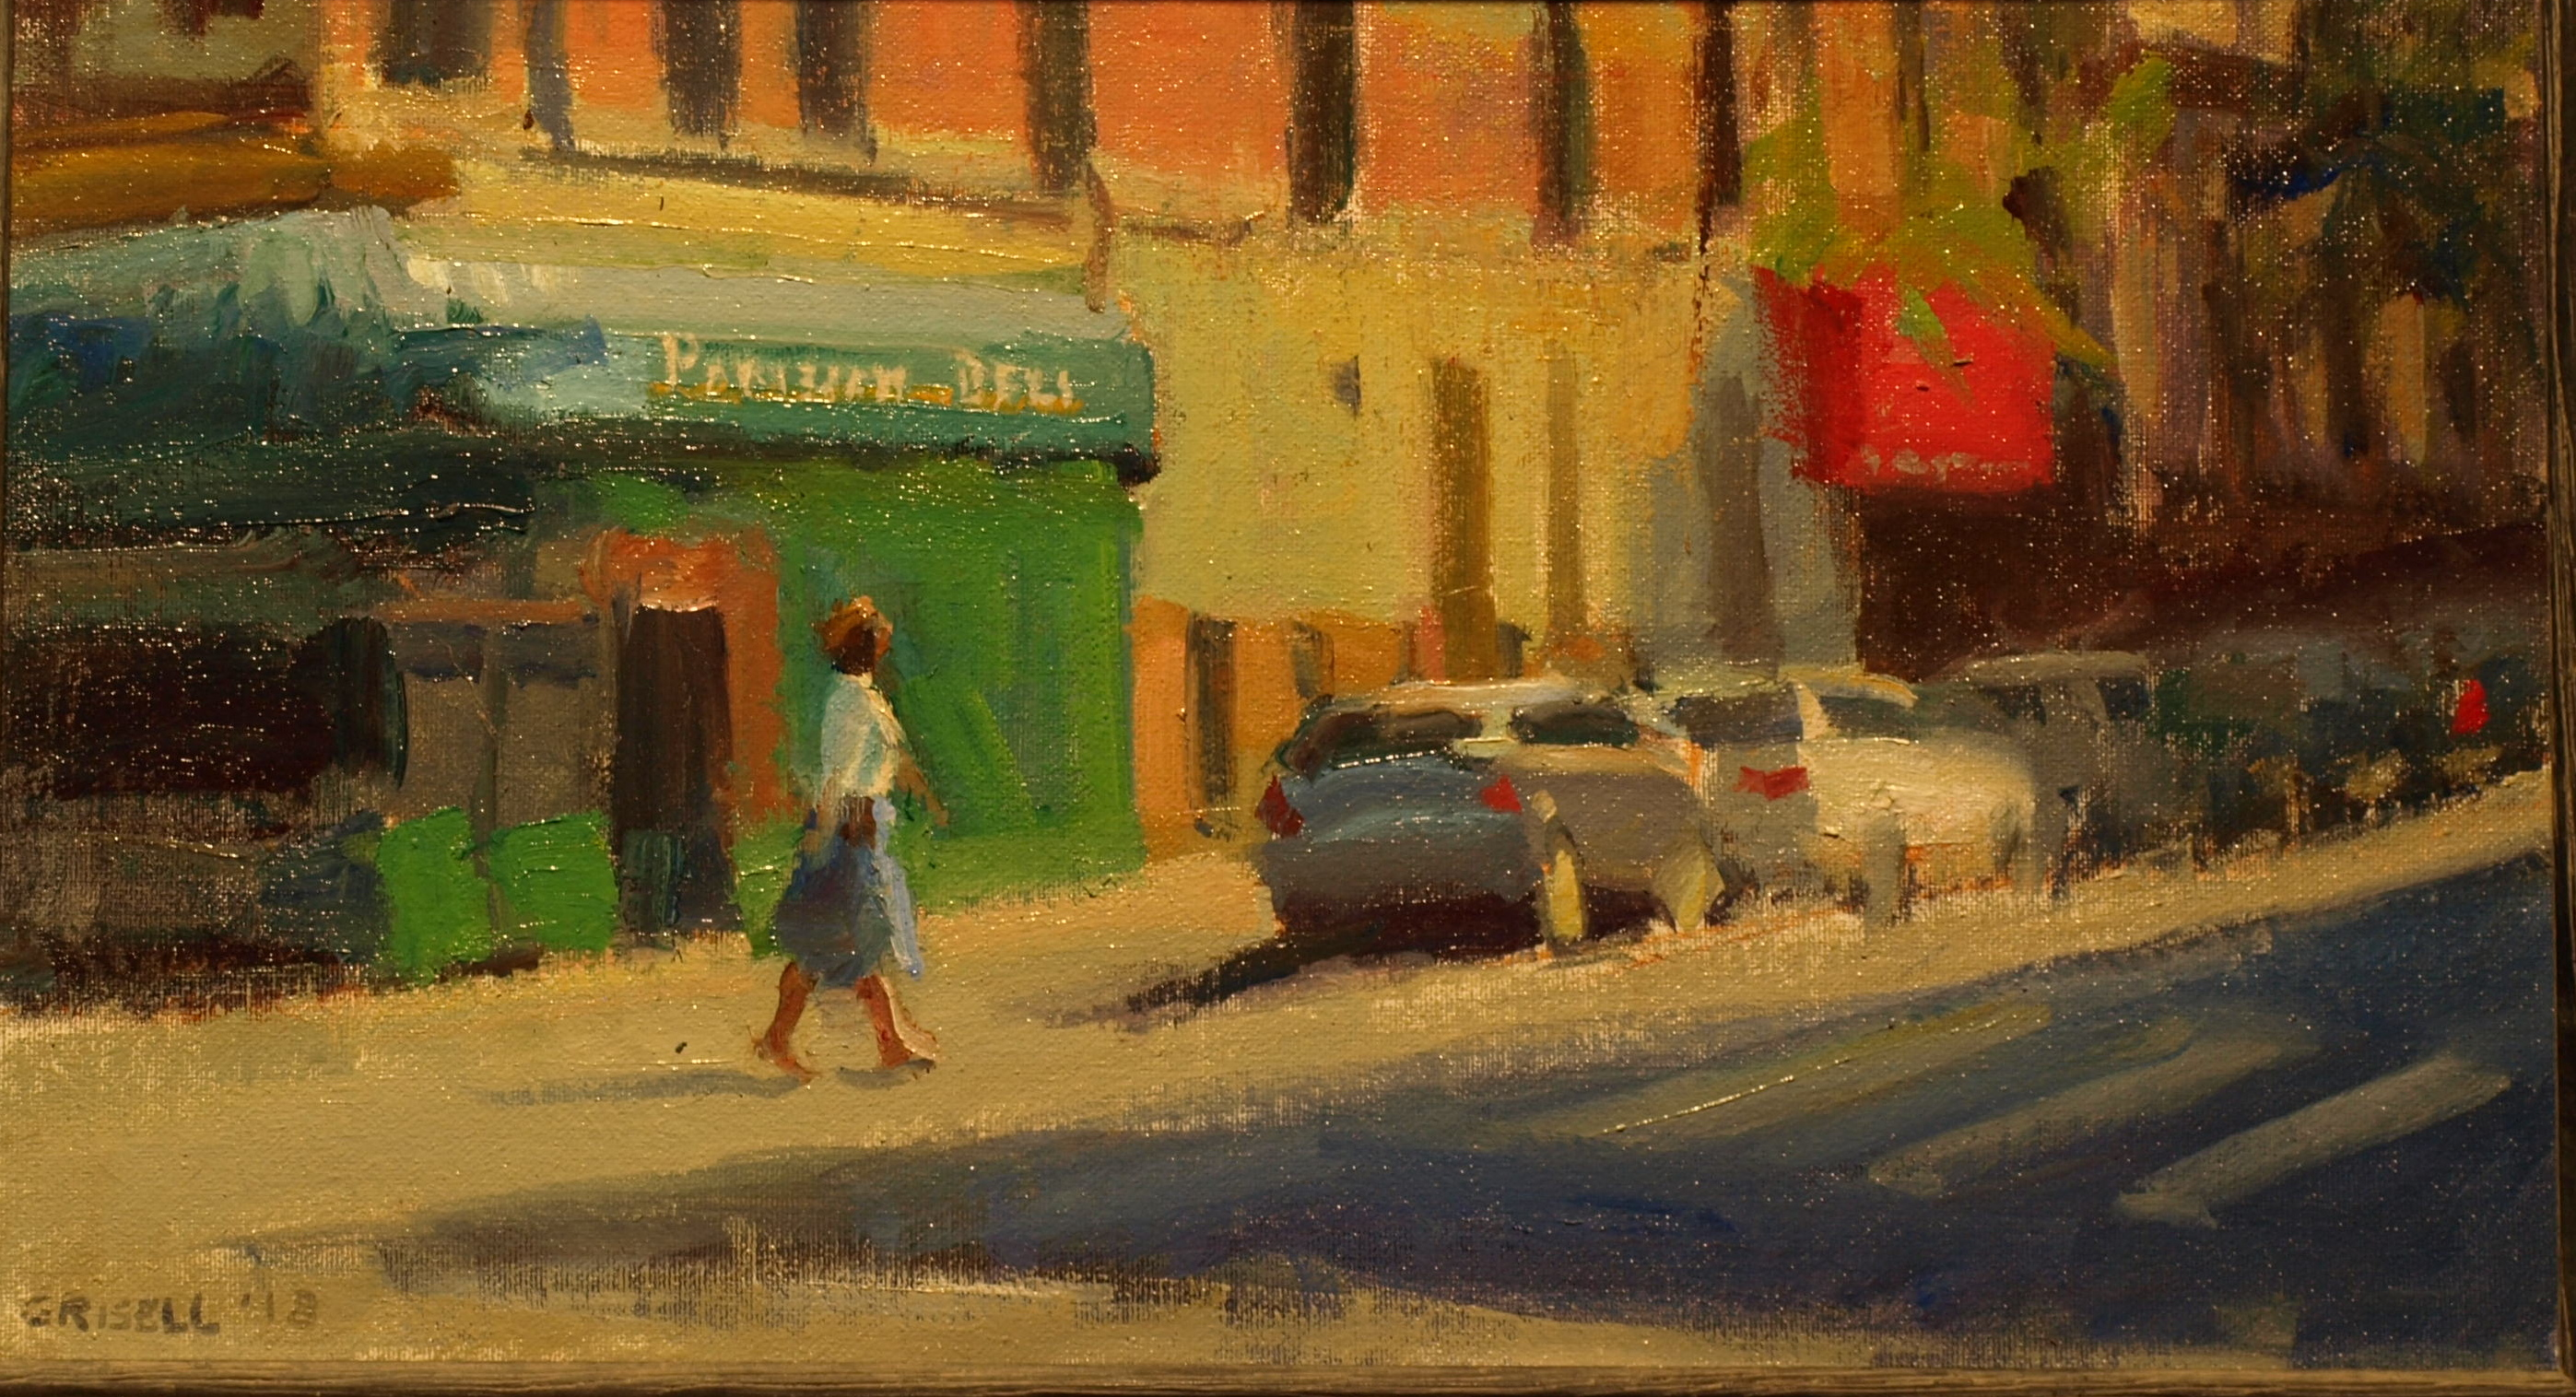 Corner Deli, Oil on Canvas on Panel, 9 x 16 Inches, by Susan Grisell, $275